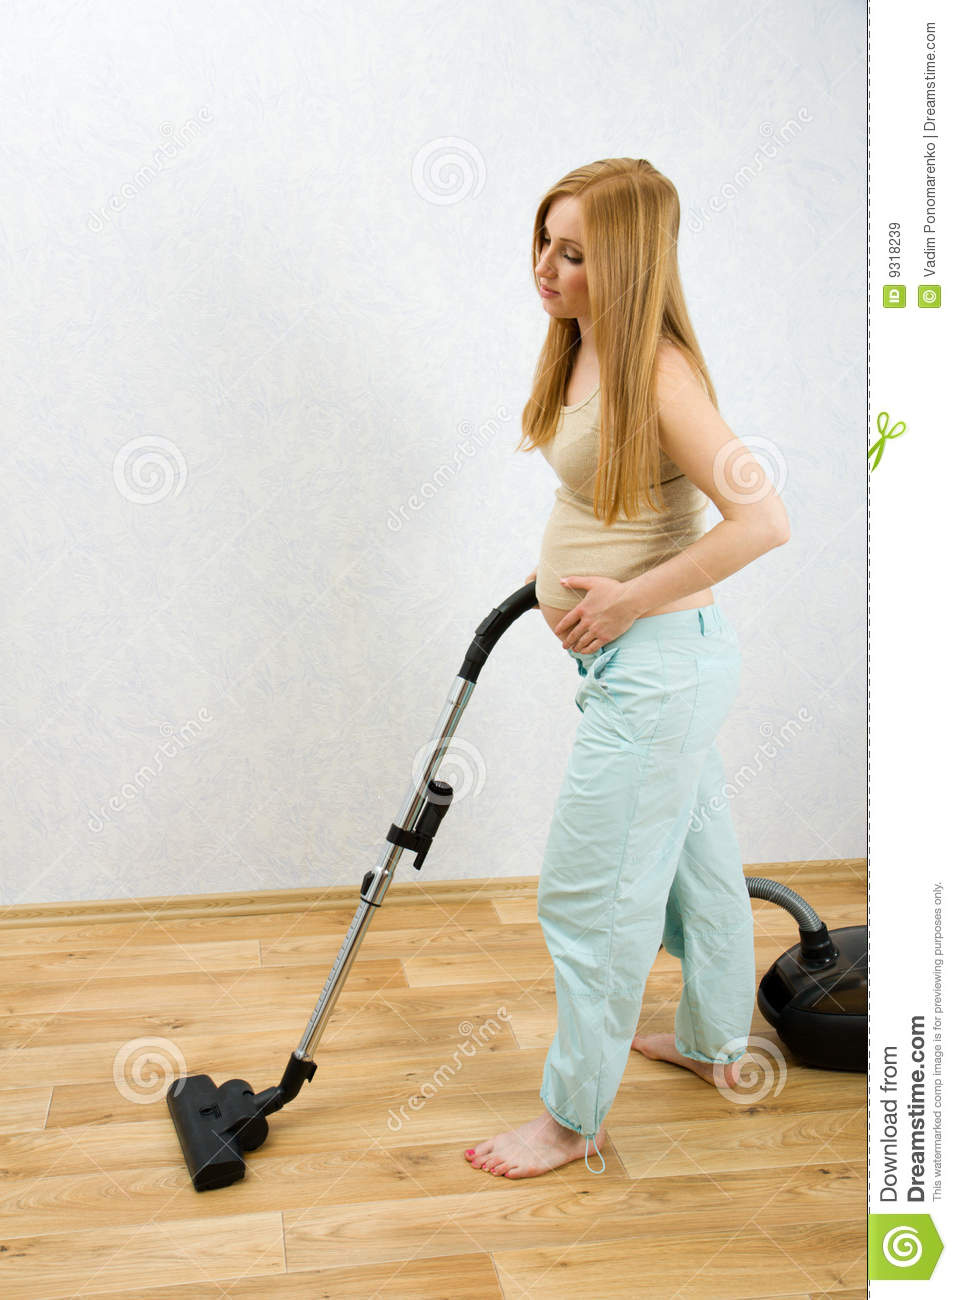 Pregnant Woman Cleaning Floor With Vacuum Cleaner Royalty Free Stock Images  Image 9318239